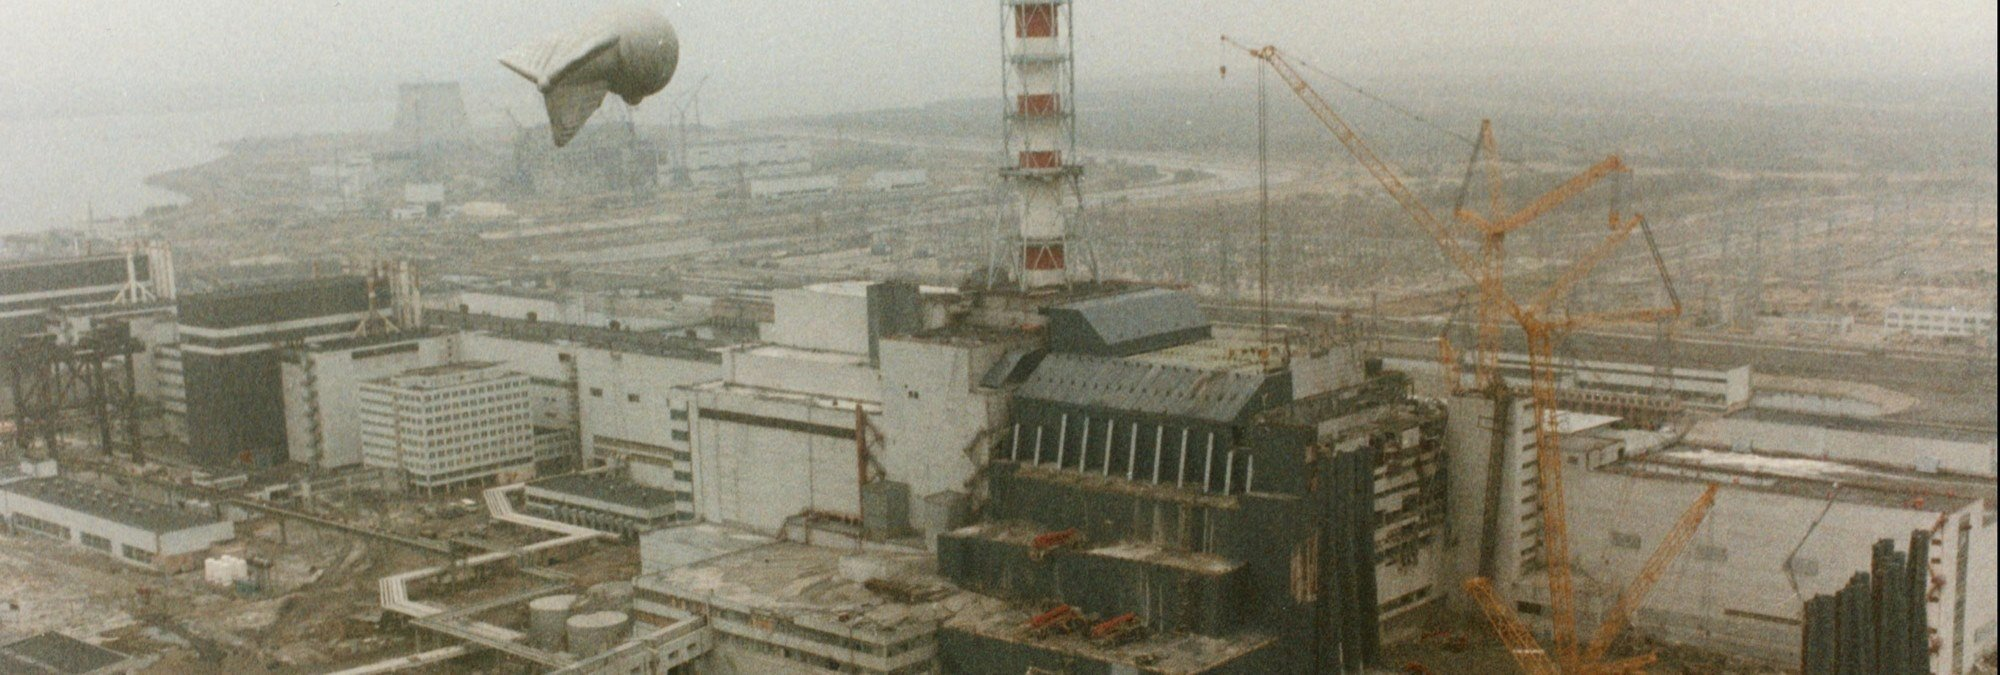 Chernobyl Disaster In Pripyat